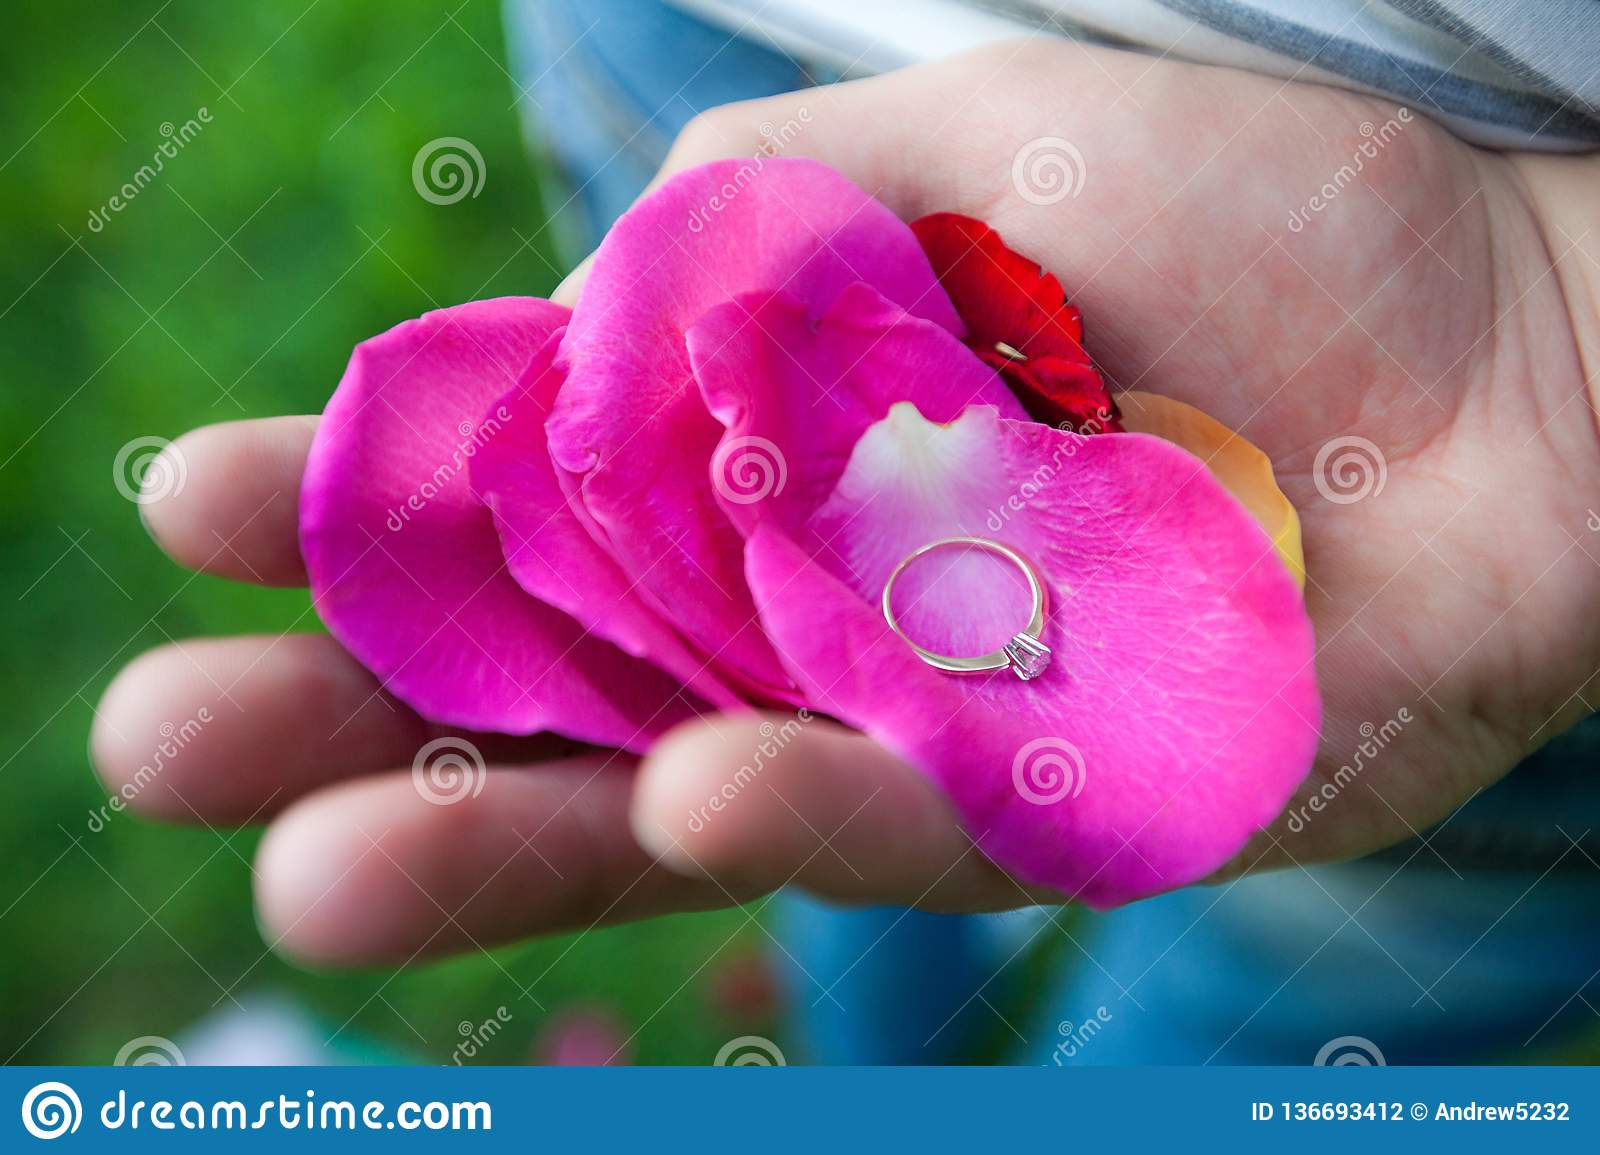 Ring on the petals in hand